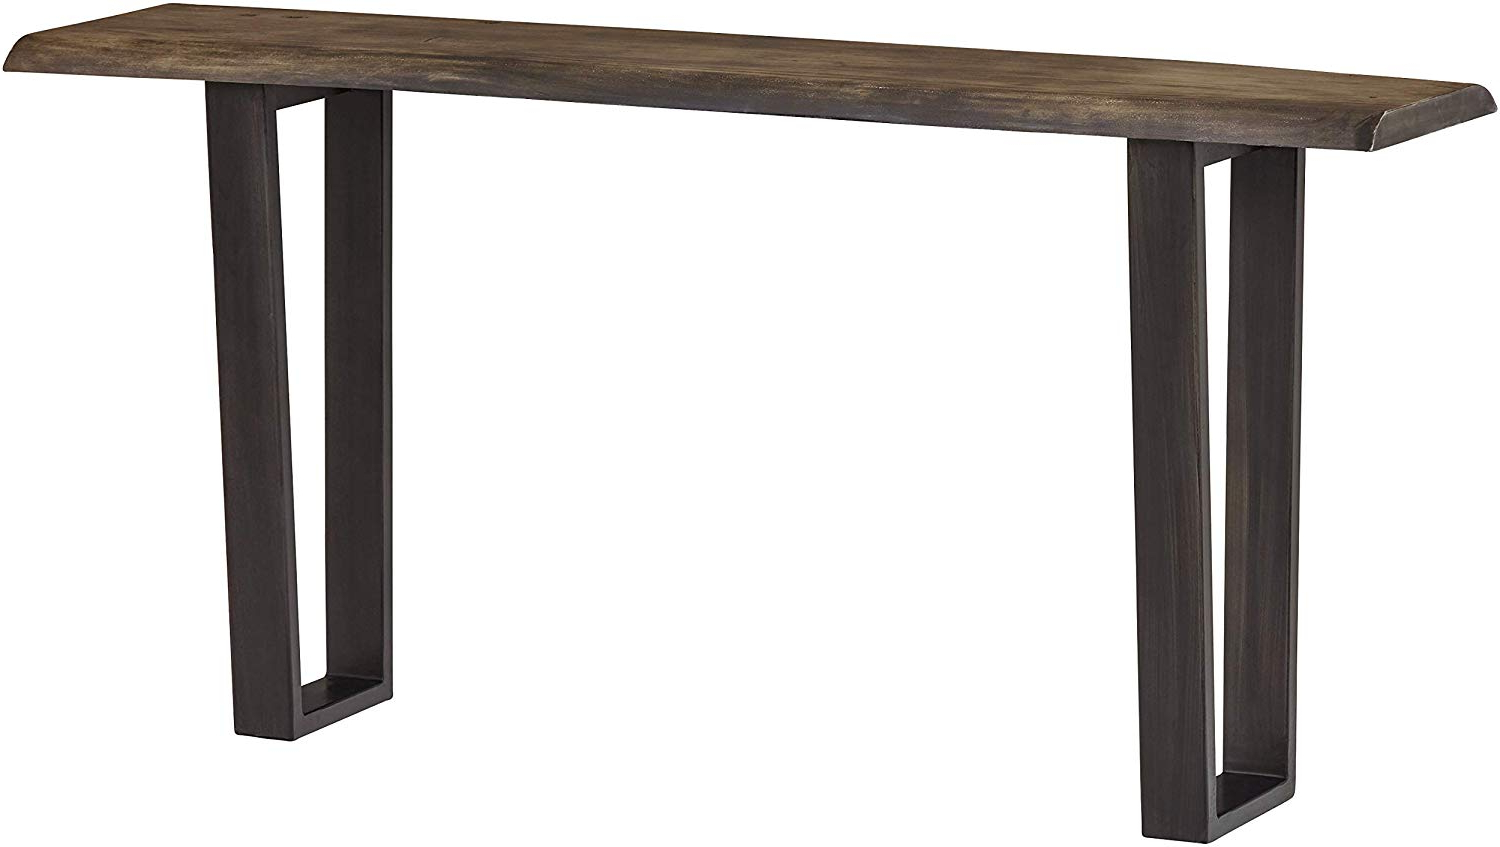 """Well Known Acacia Wood Top Dining Tables With Iron Legs On Raw Metal Inside Stone & Beam Garrett Rustic Acacia Wood Sofa Table With Iron Legs, 60""""w,  Gray And Raw Metal (View 21 of 25)"""